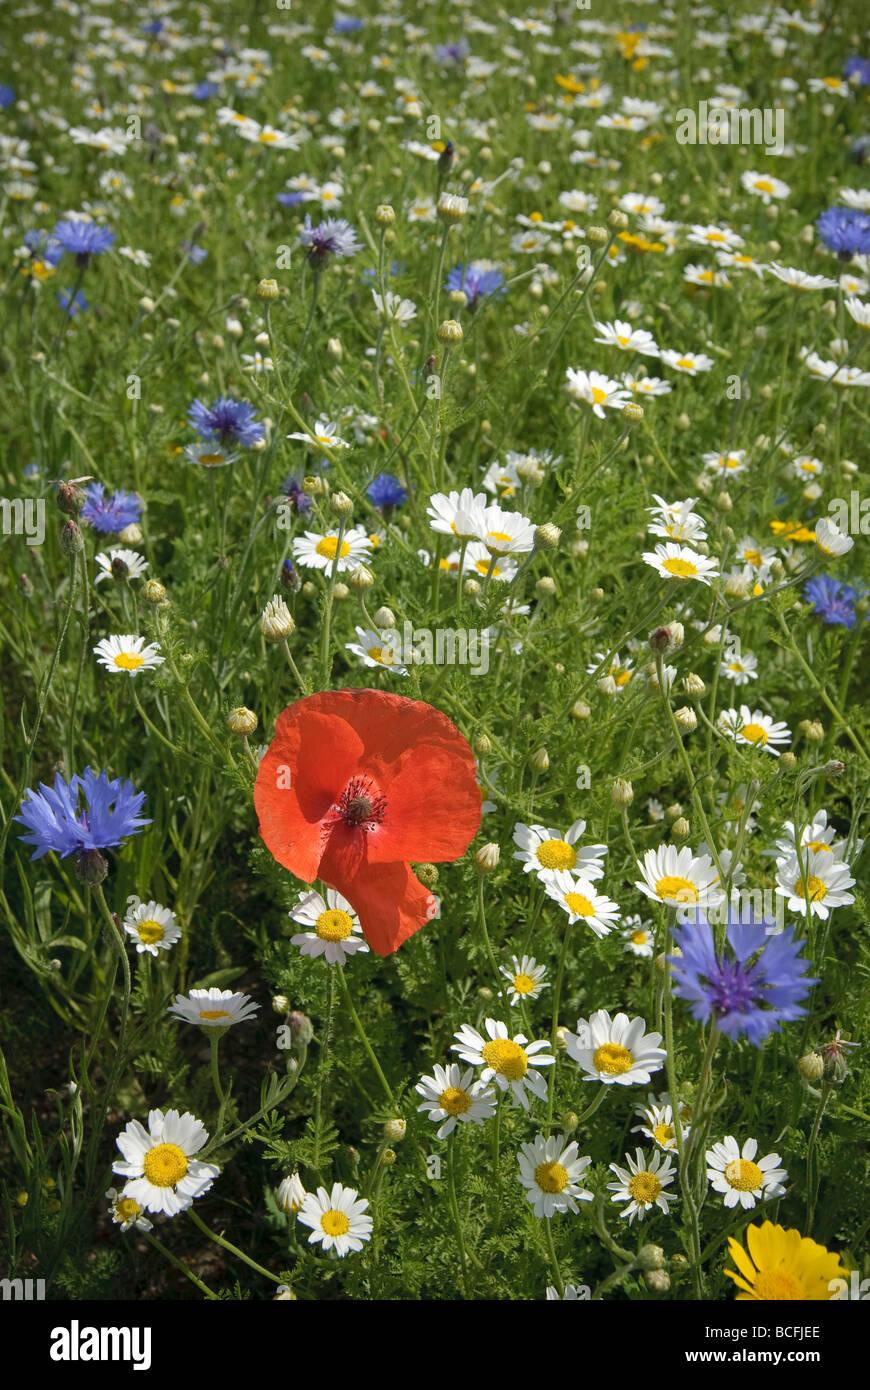 Wildflowers on a roadside verge with a red poppy central. - Stock Image